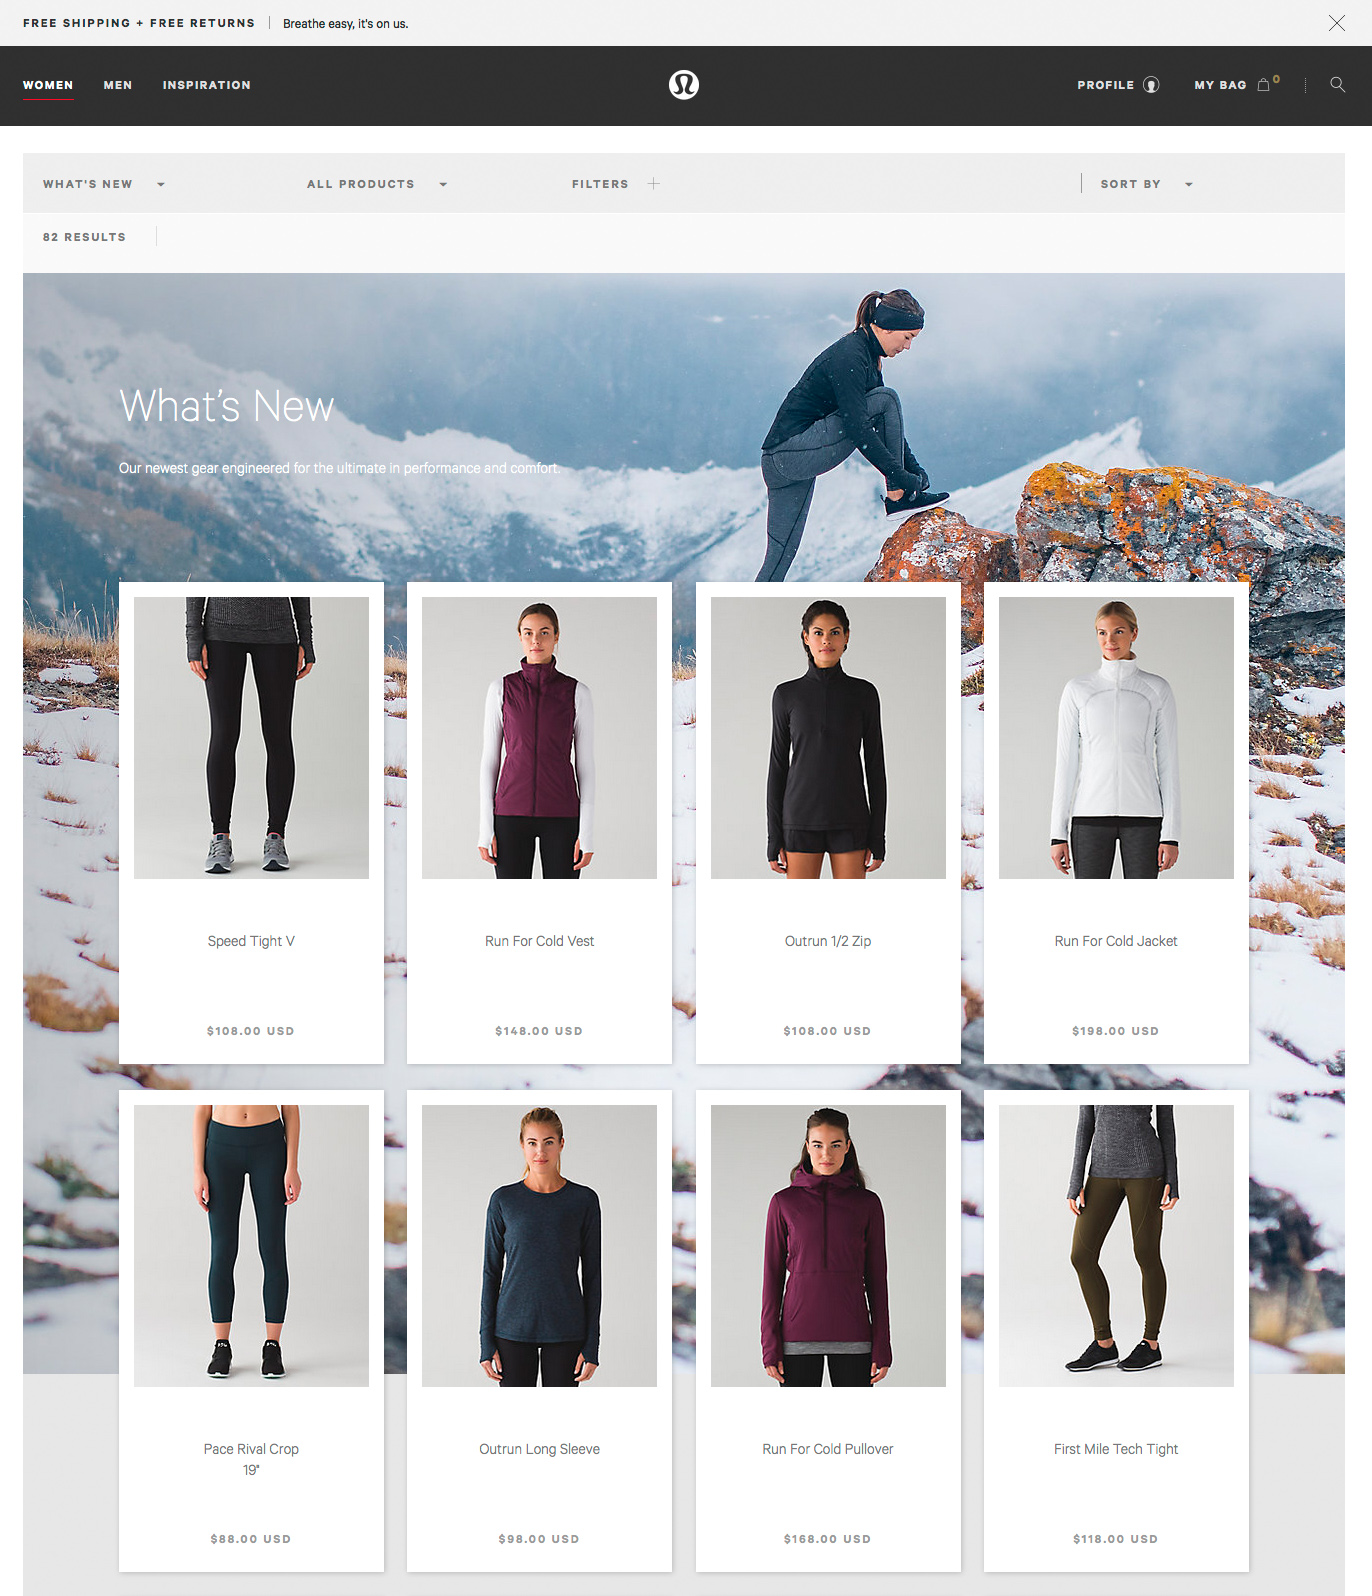 lululemon_running_campaign_photography_cold_mountains_image_27.jpg